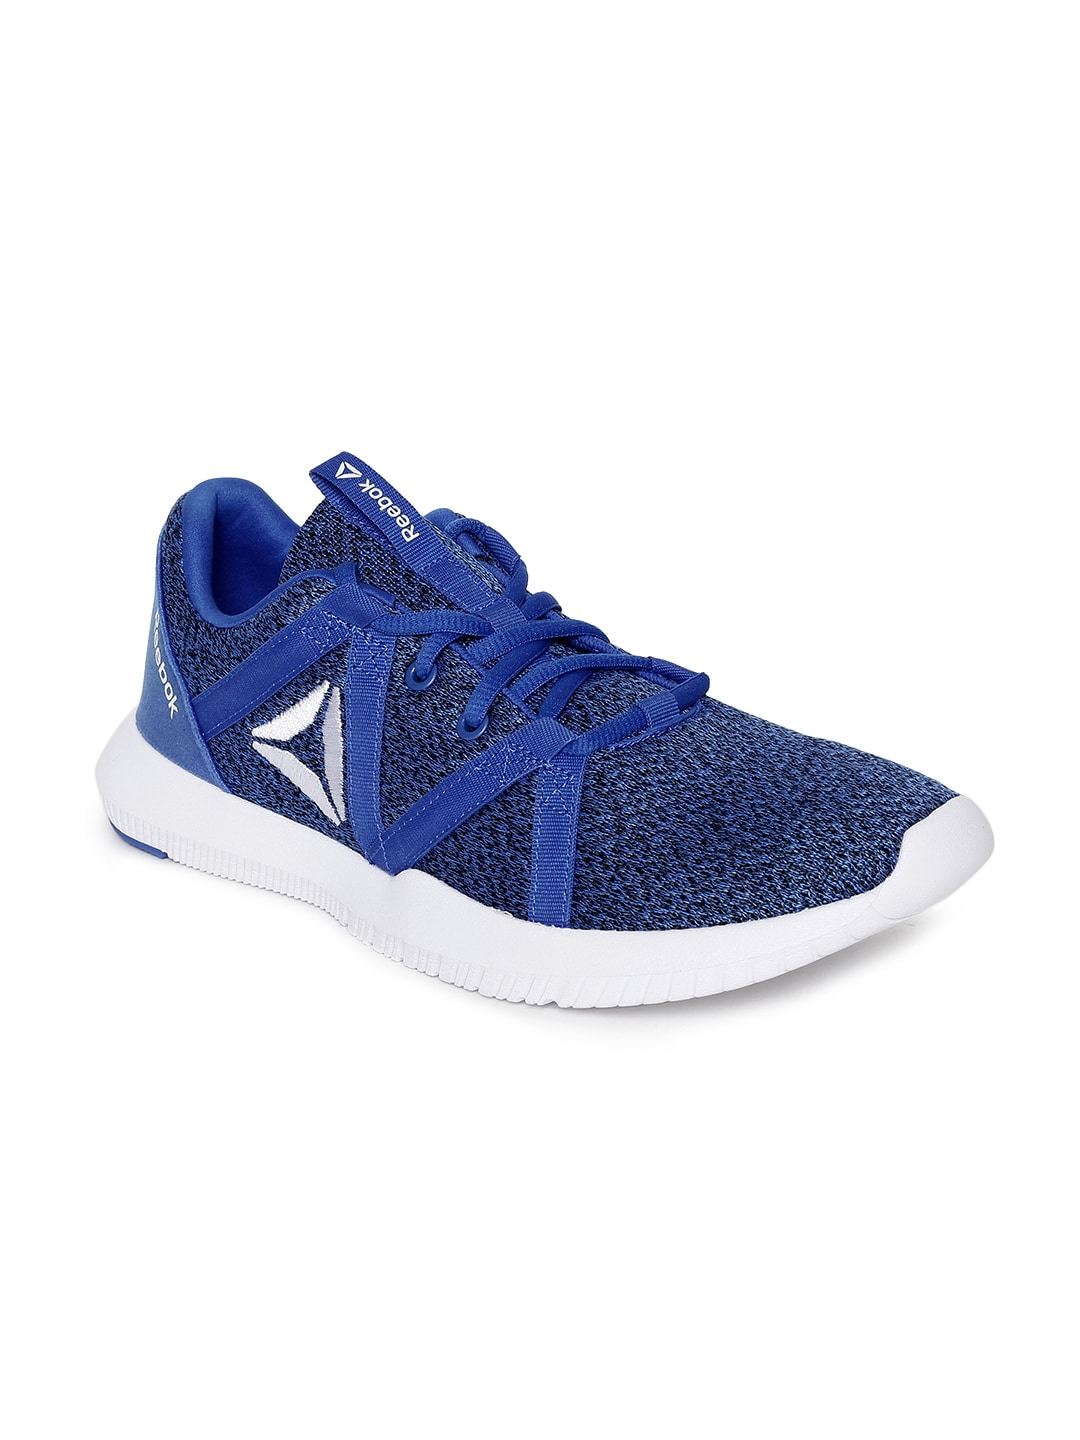 094f2c44db1 Reebok Training Shoes - Buy Reebok Training Shoes online in India